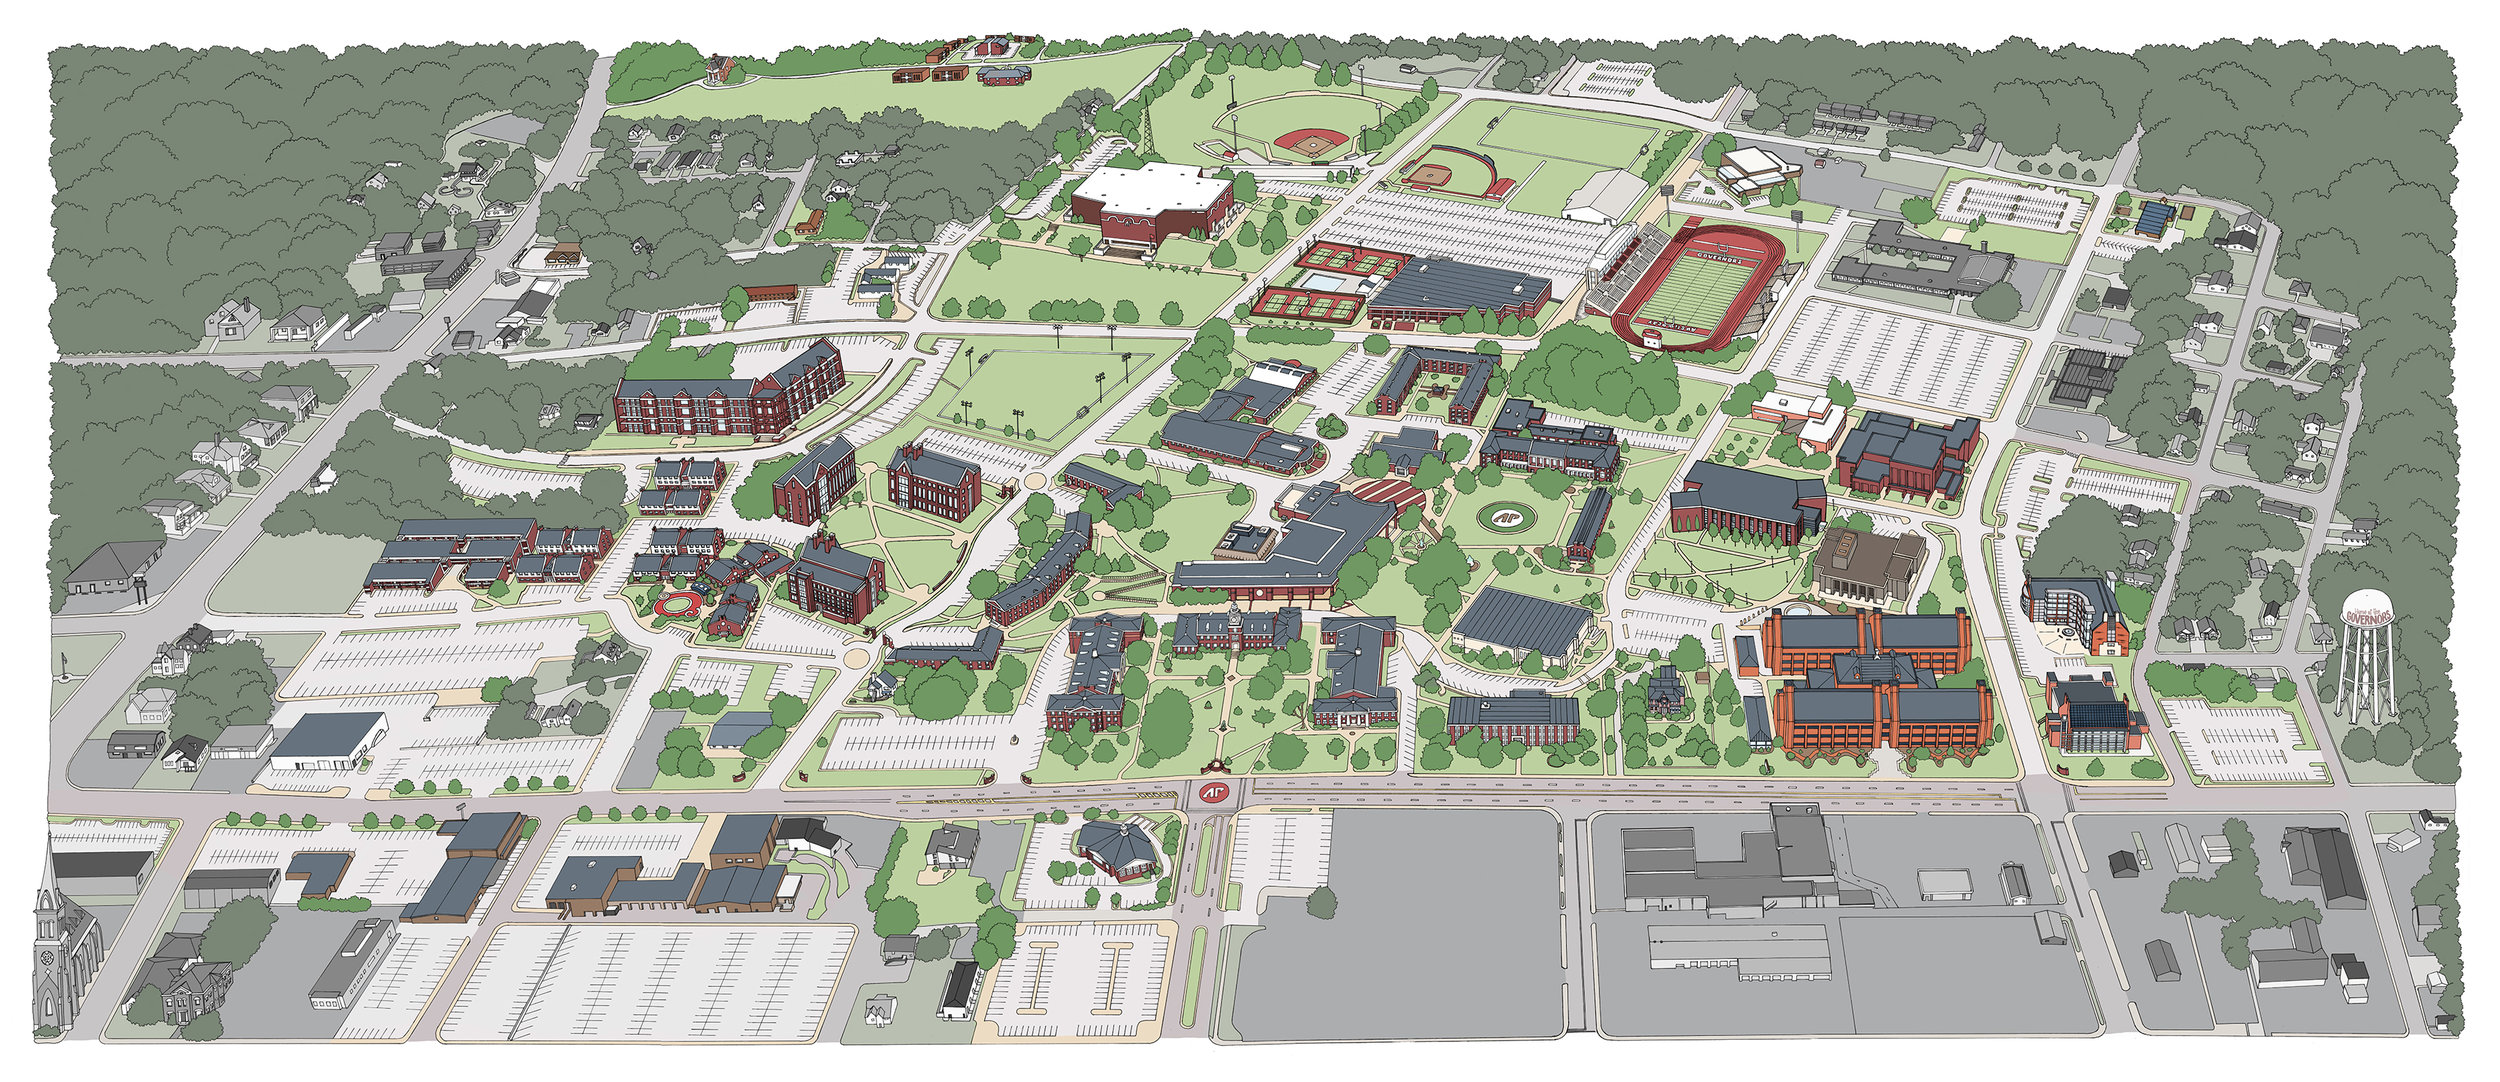 CAMPUS MAP FOR AUSTIN PEAY STATE UNIVERSITY, pen & ink on vellum